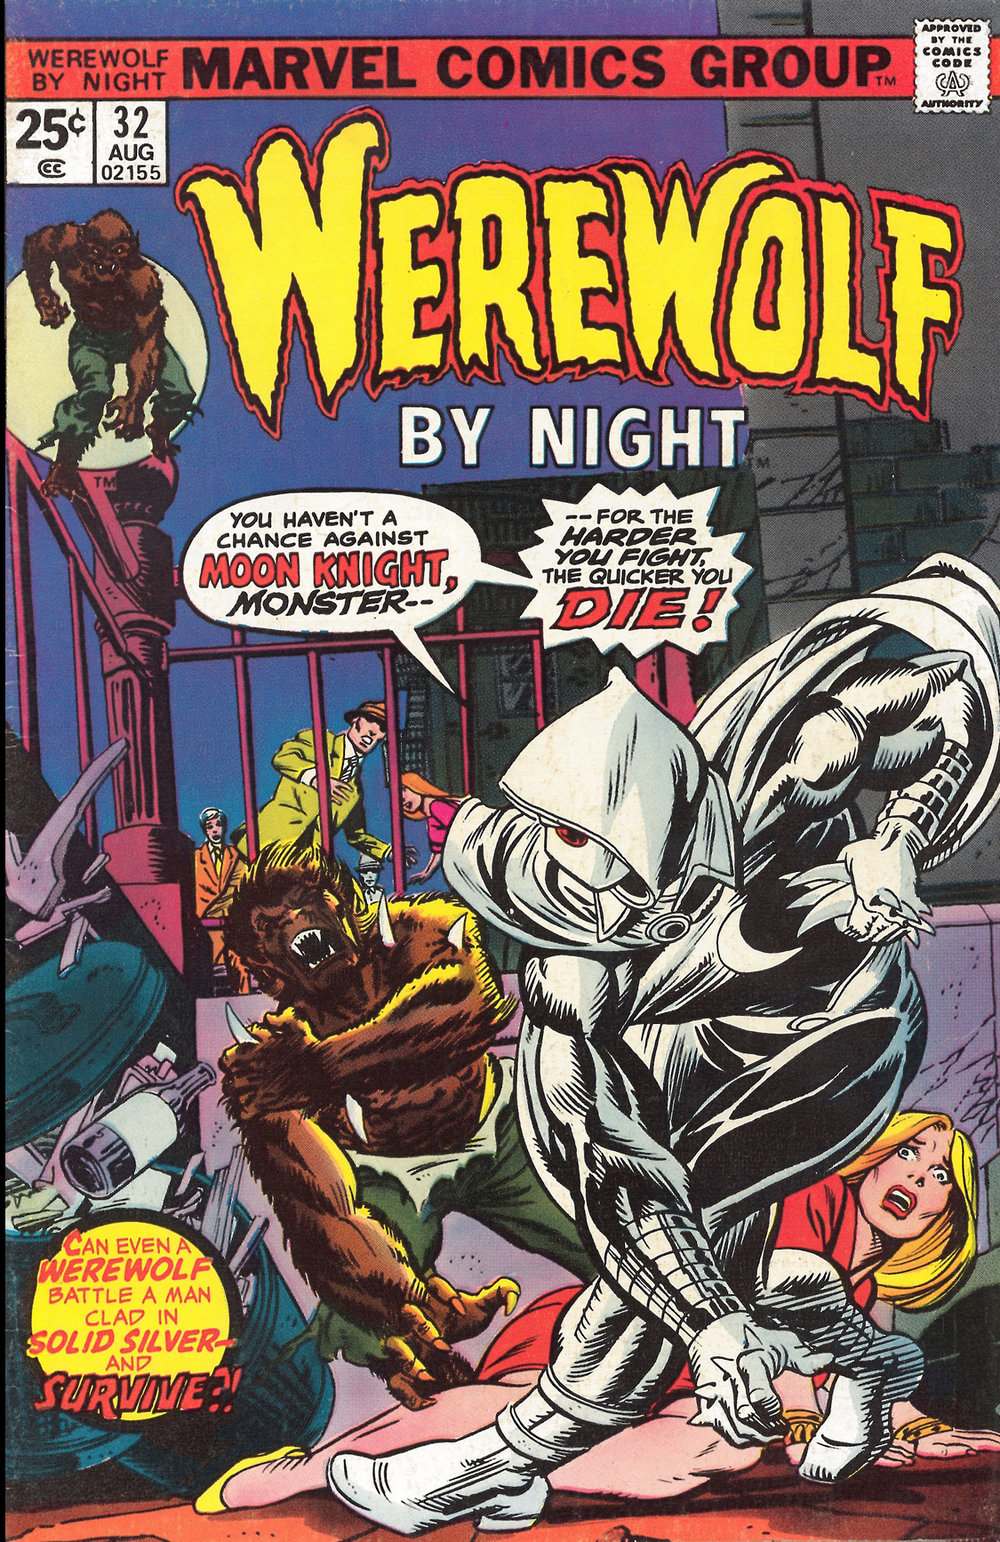 Don Perlin: Creator of Moon Knight, is gonna punch you in the nose if you don't buy his book! - Don Perlin and Doug Moench created Moon Knight. The character first appeared first appeared in Werewolf by Night #32 (August 1975)